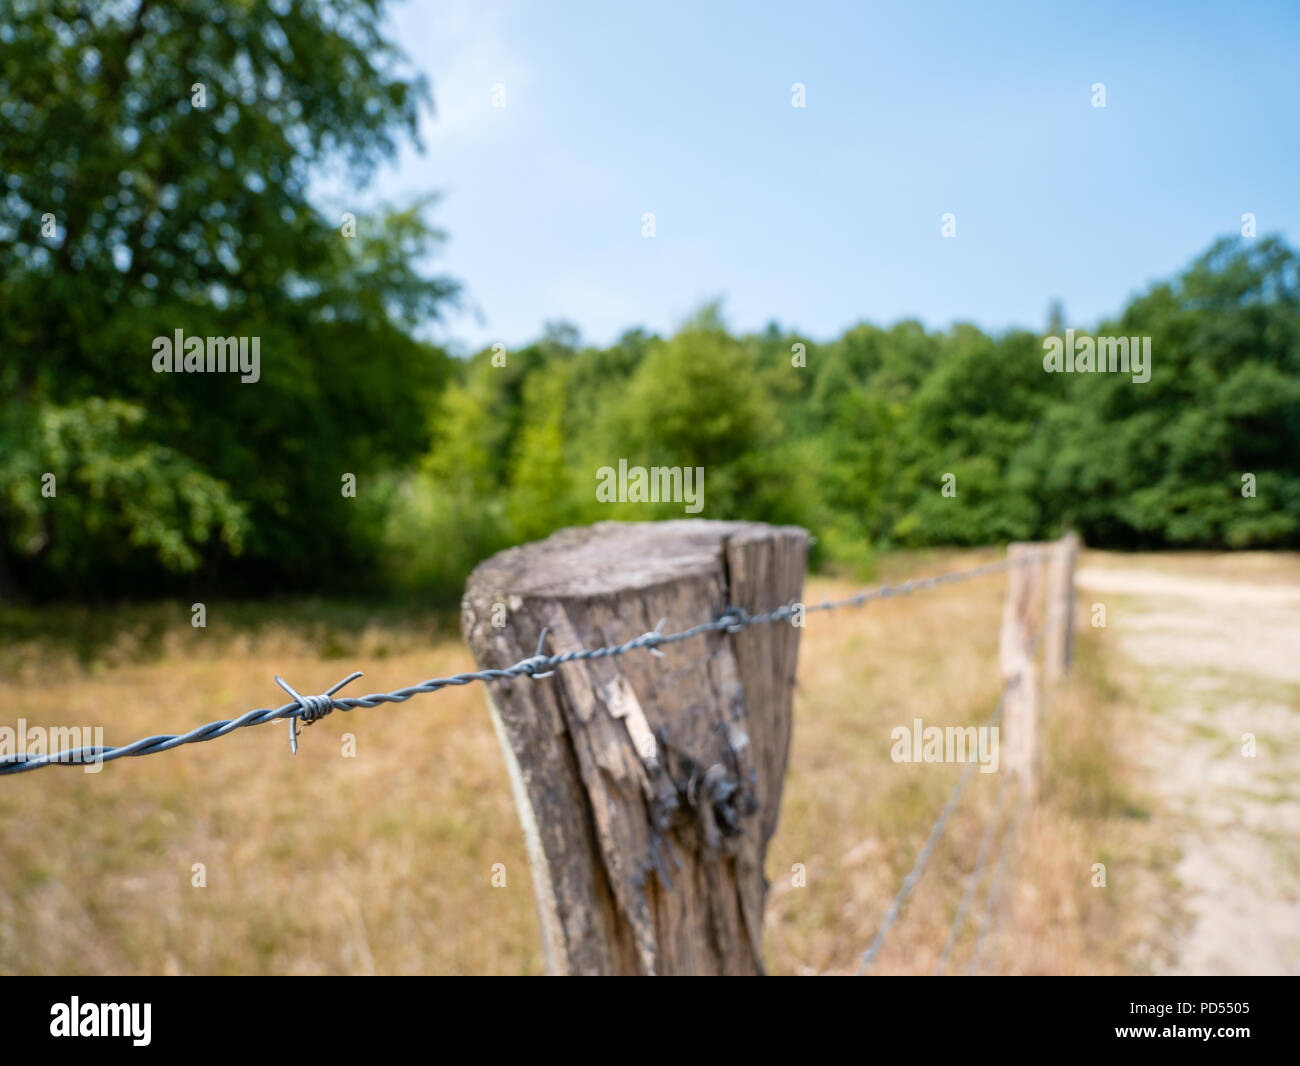 Barb wire with selective focus on foreground at day. - Stock Image